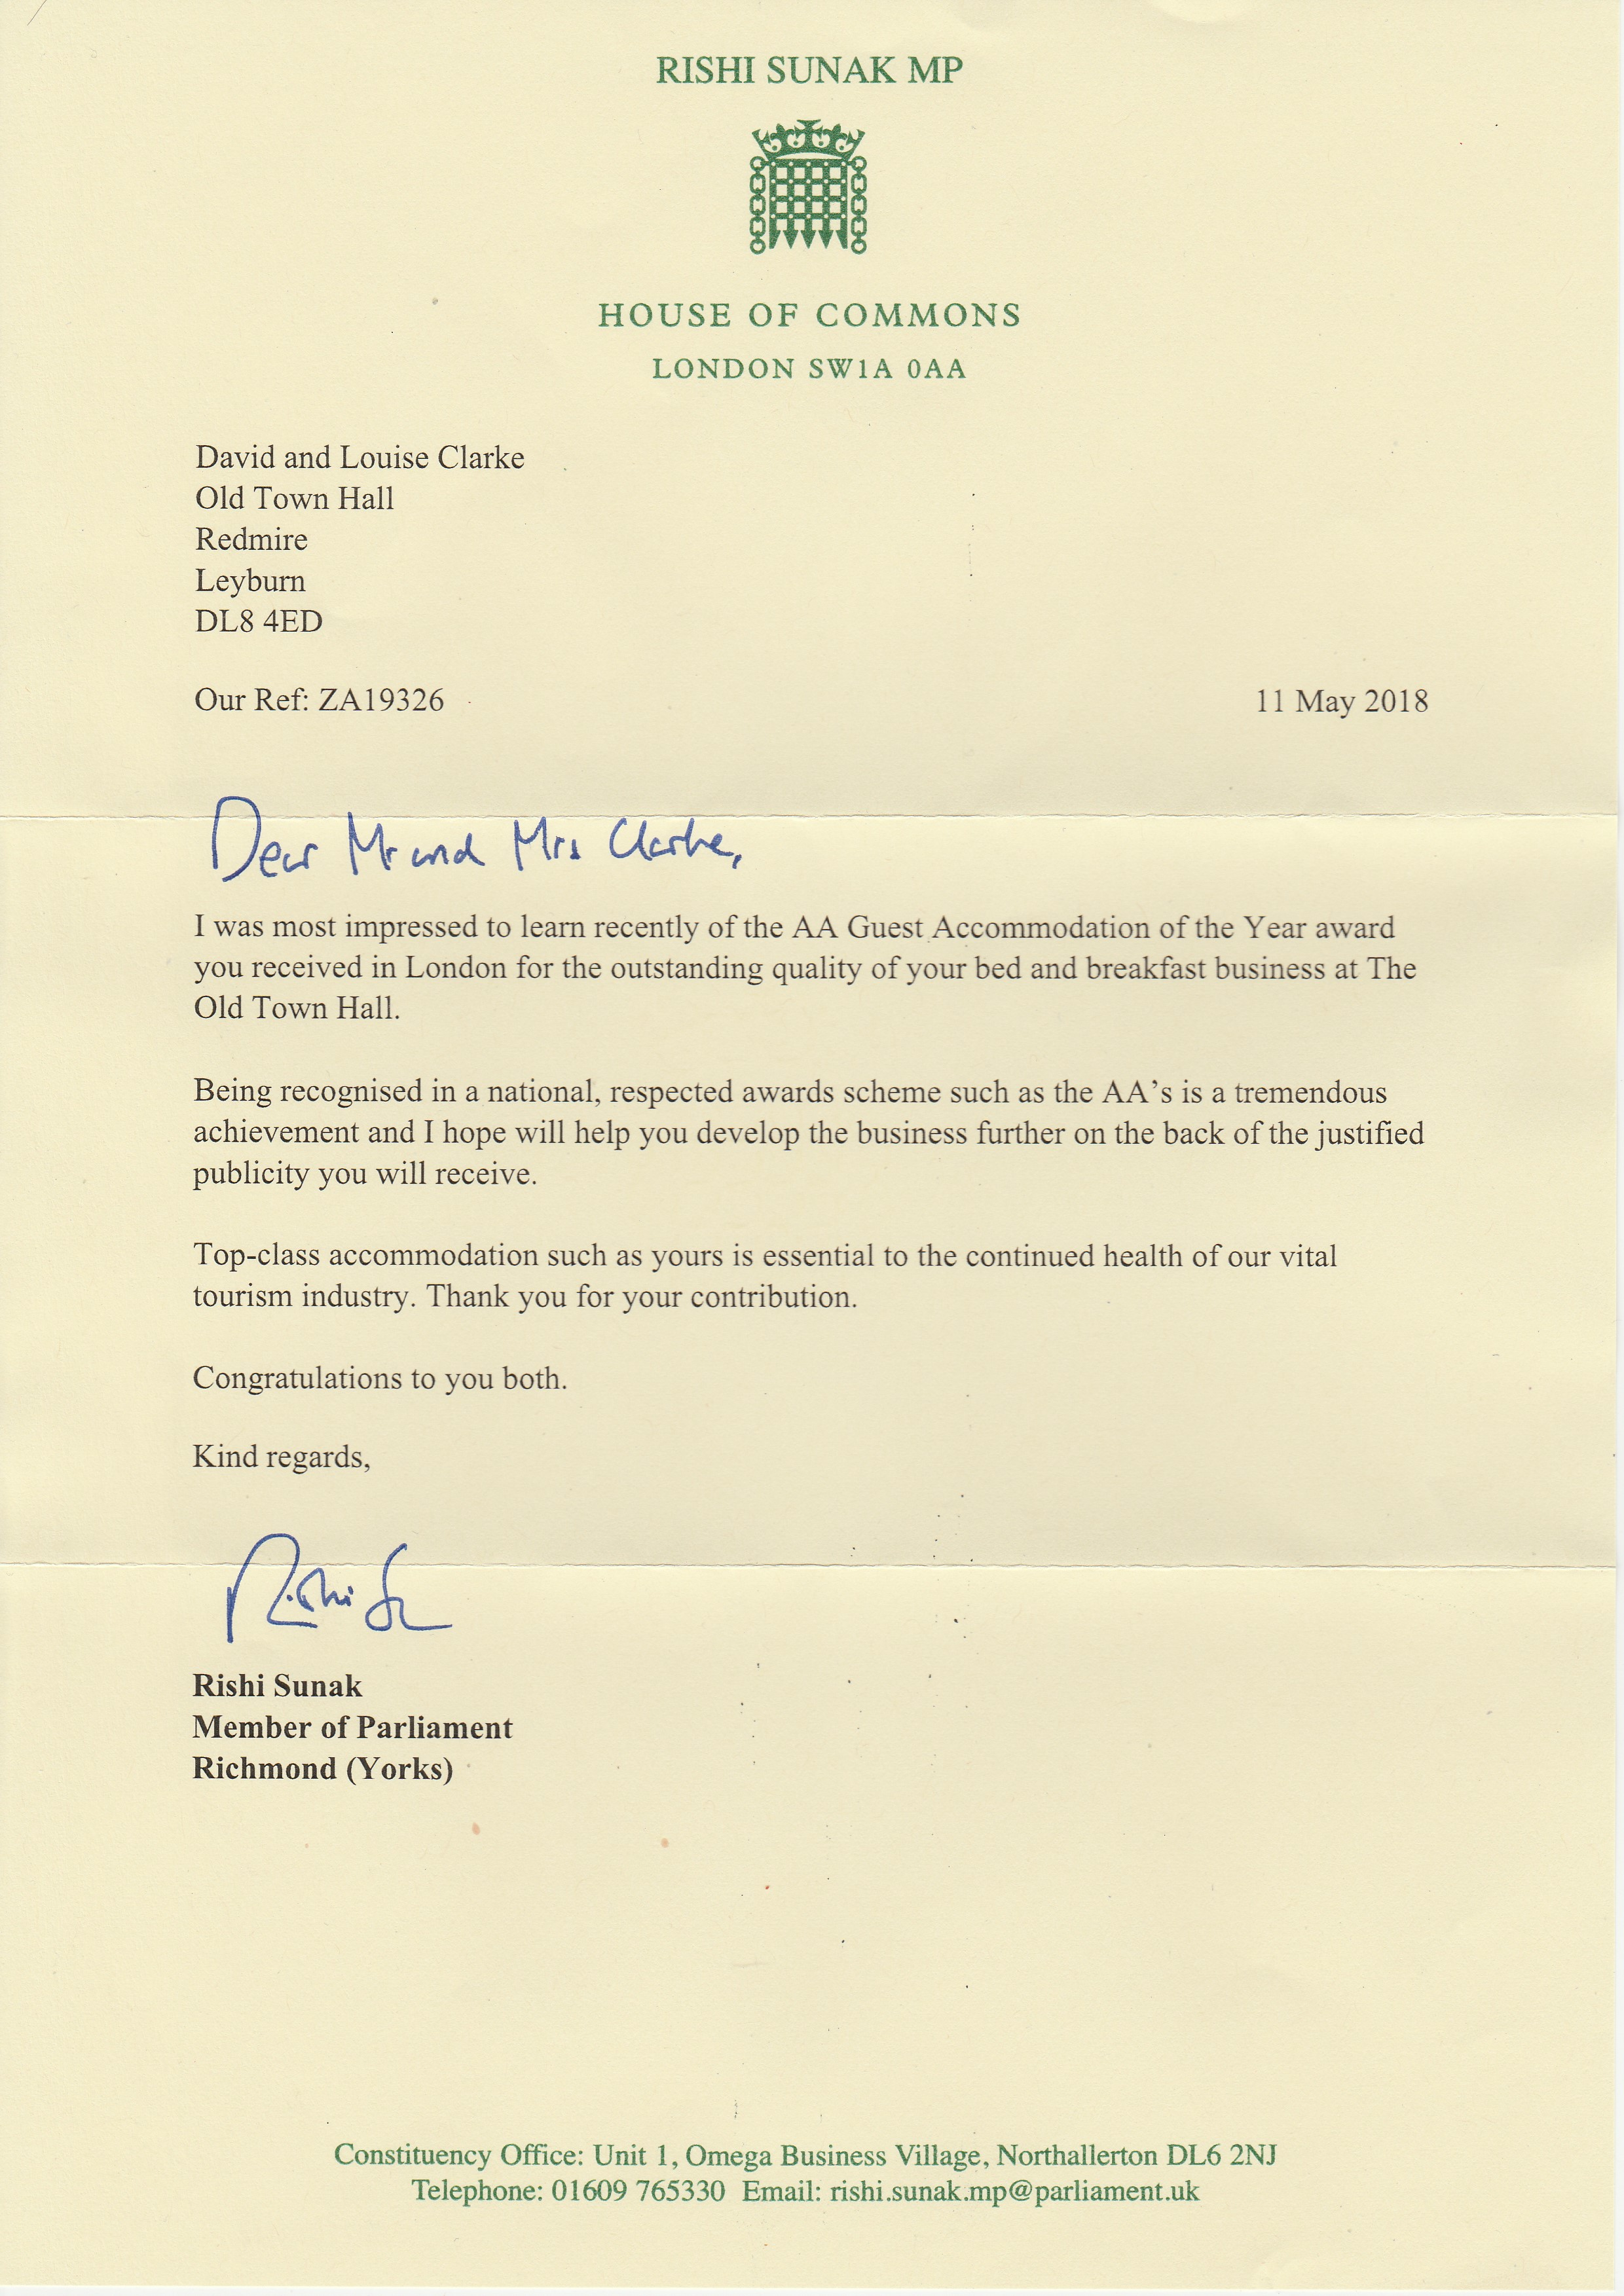 Congratulations letter from Rishi Sunak MP